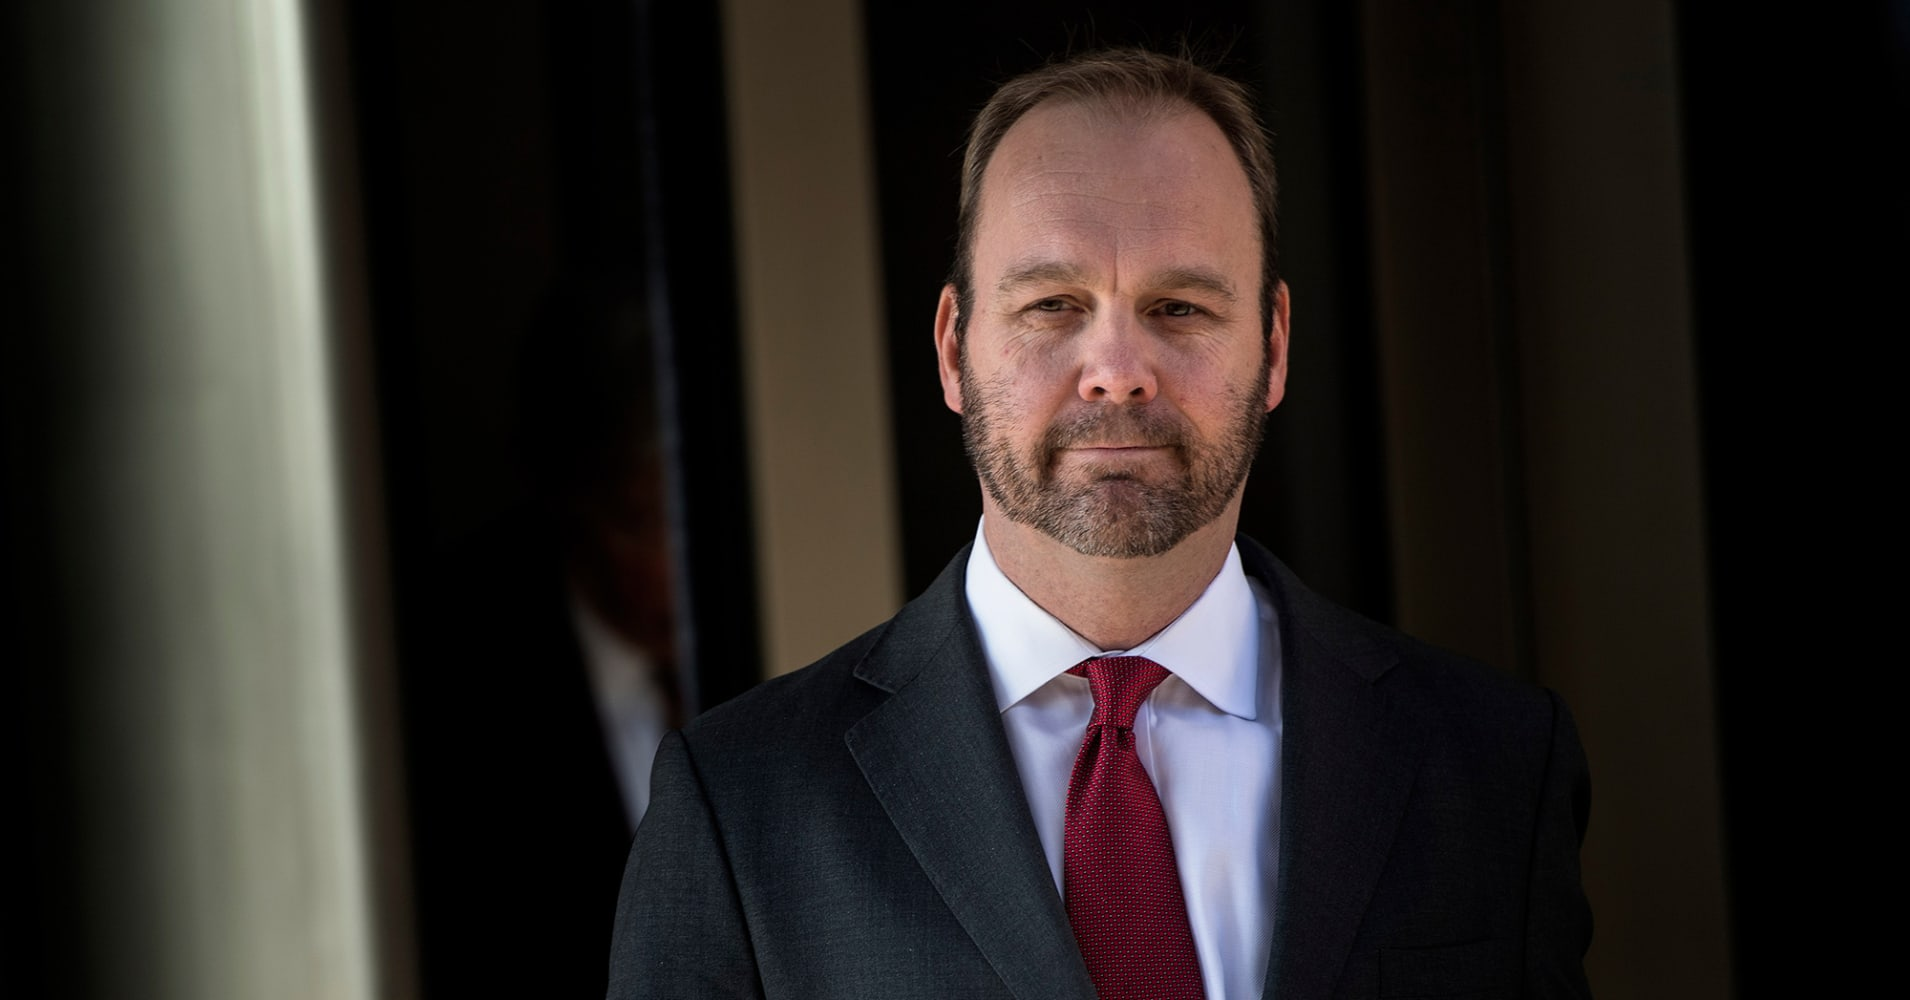 Trump campaign aide Rick Gates reportedly asked Israeli intel firm in 2016 to dr...